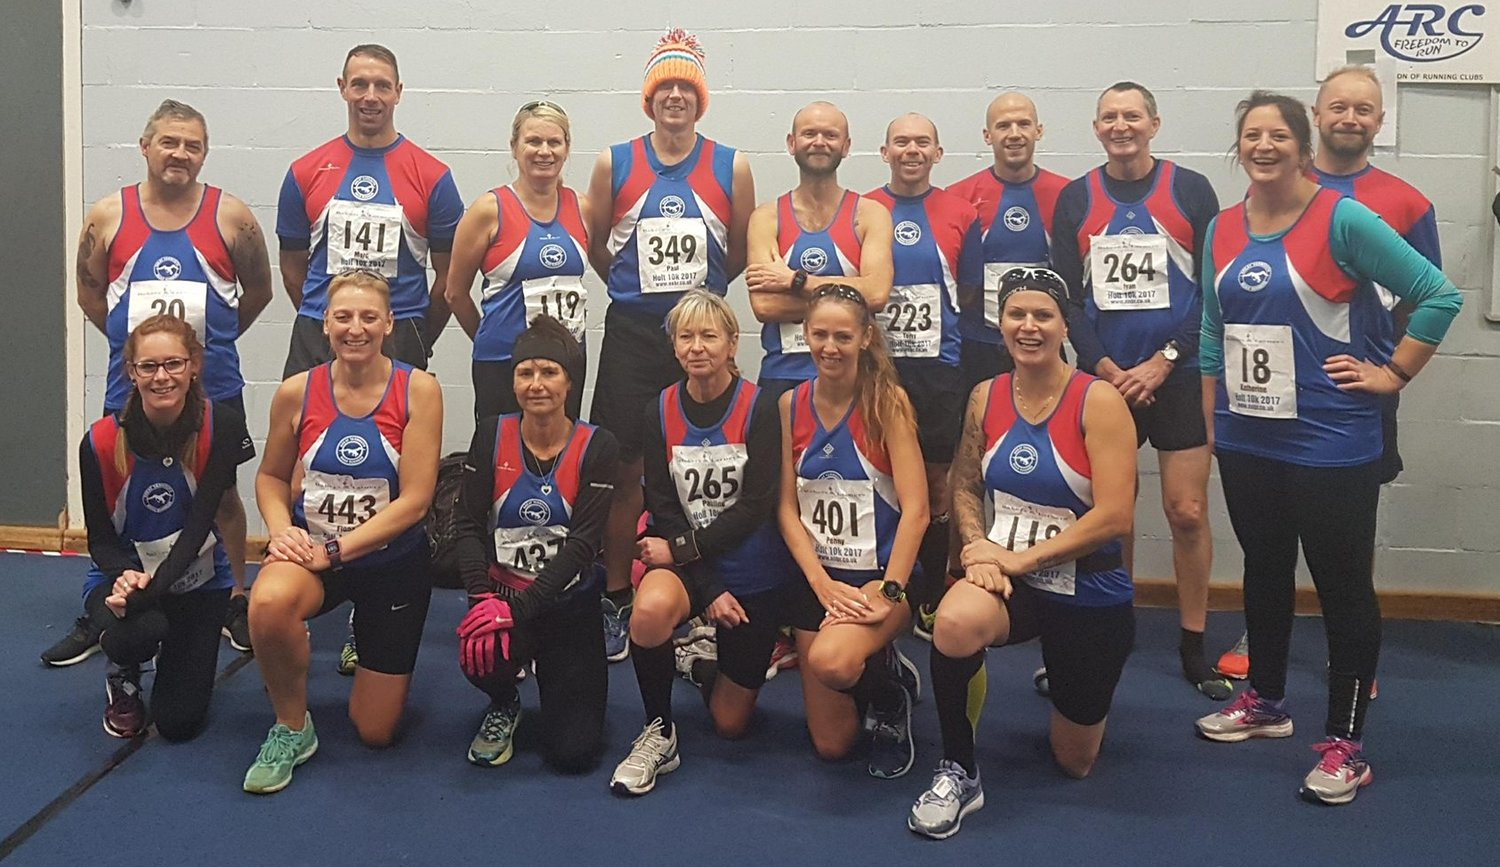 Great Yarmouth Road Runners. The friendly running club. 8a527aad0